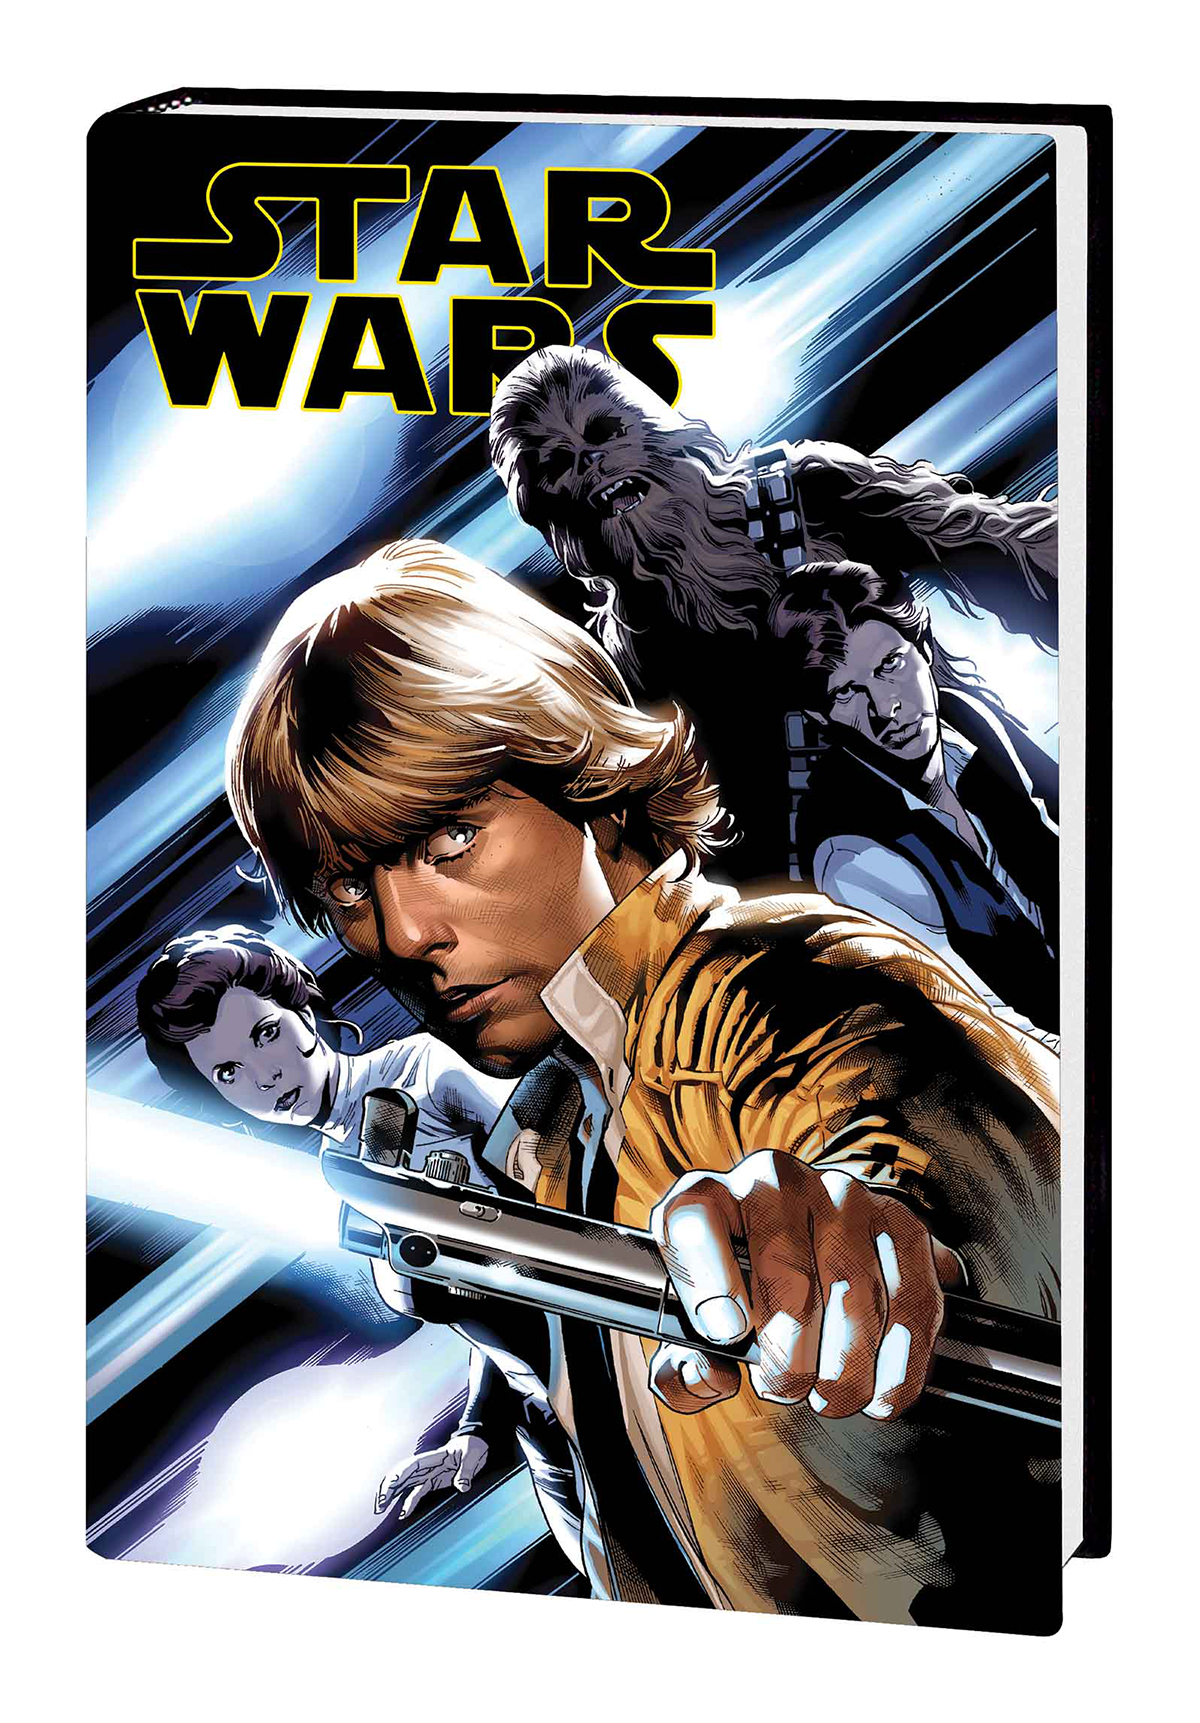 STAR WARS HC VOL 01 IMMONEN DM VAR ED